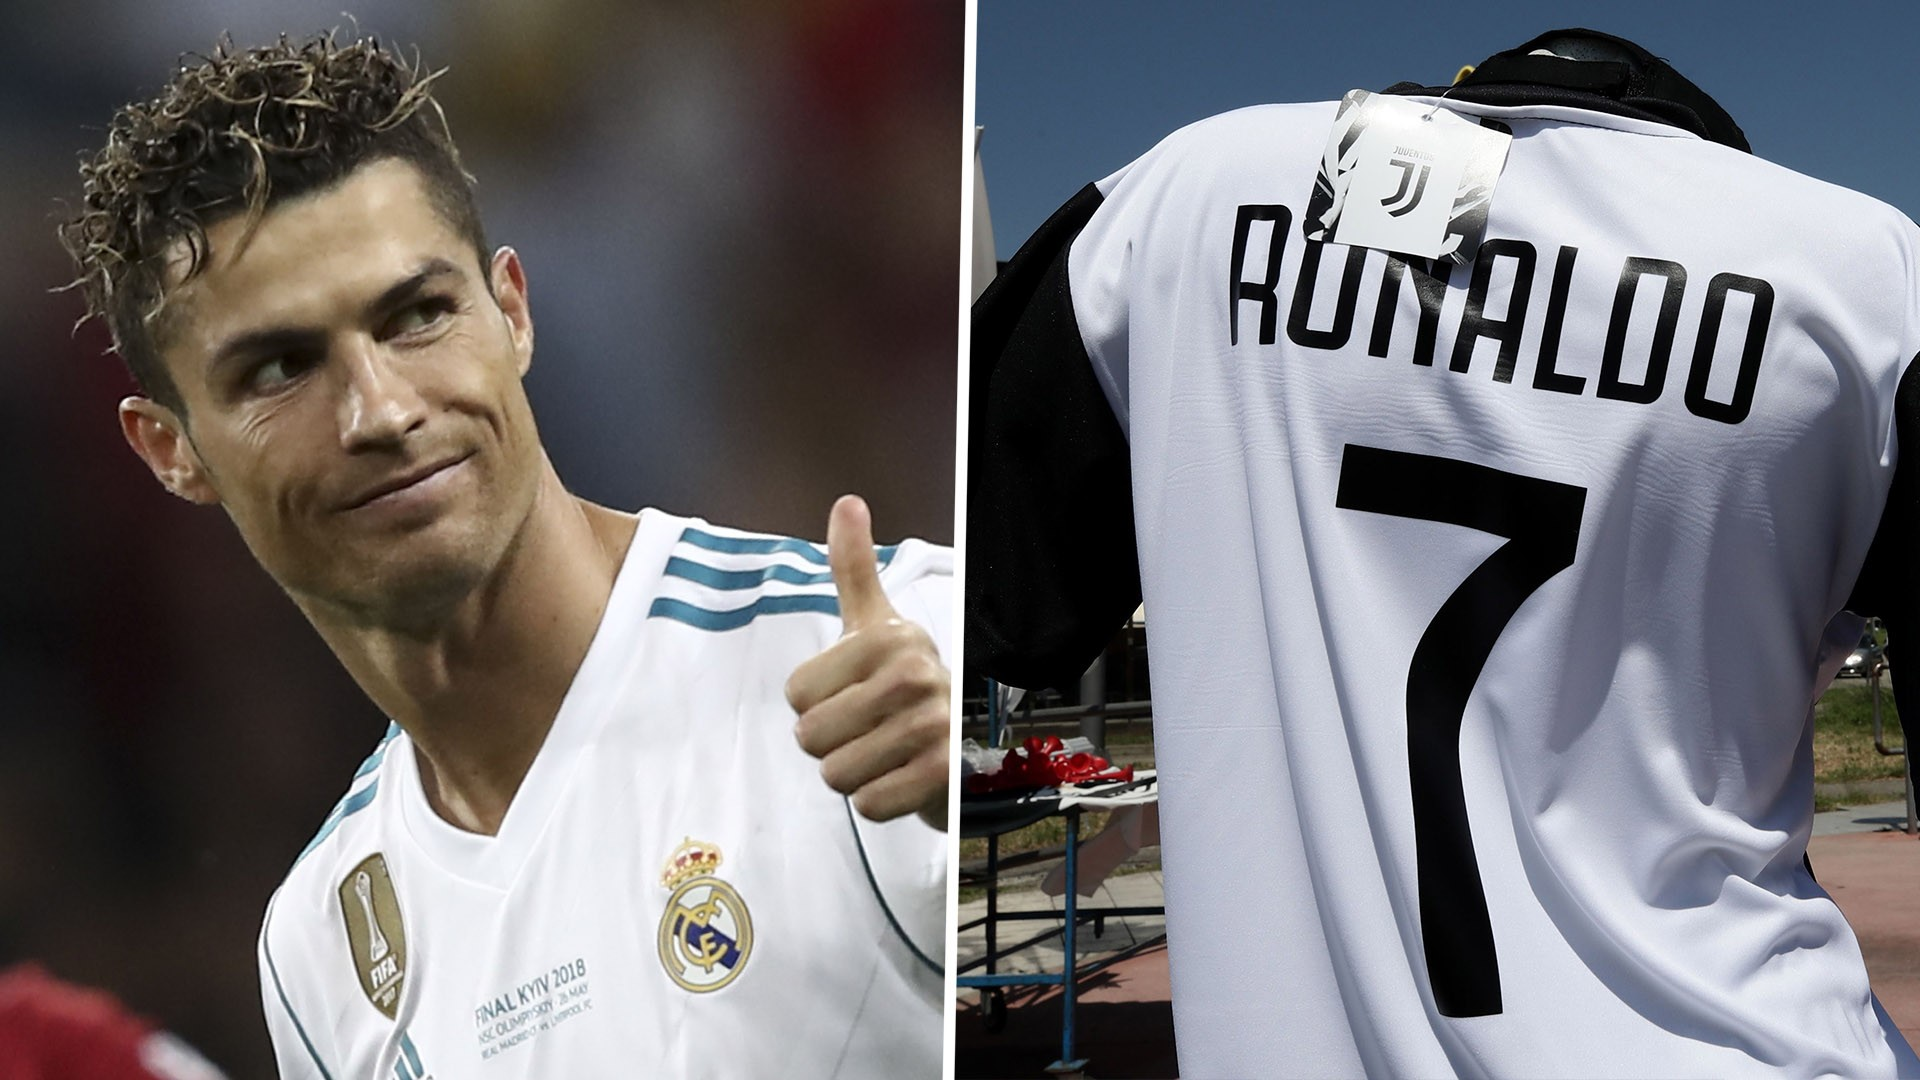 Cristiano Ronaldo leaves Real Madrid for Juventus, Transfer News: Cristiano Ronaldo leaves Real Madrid for Juventus in €100m million mega transfer